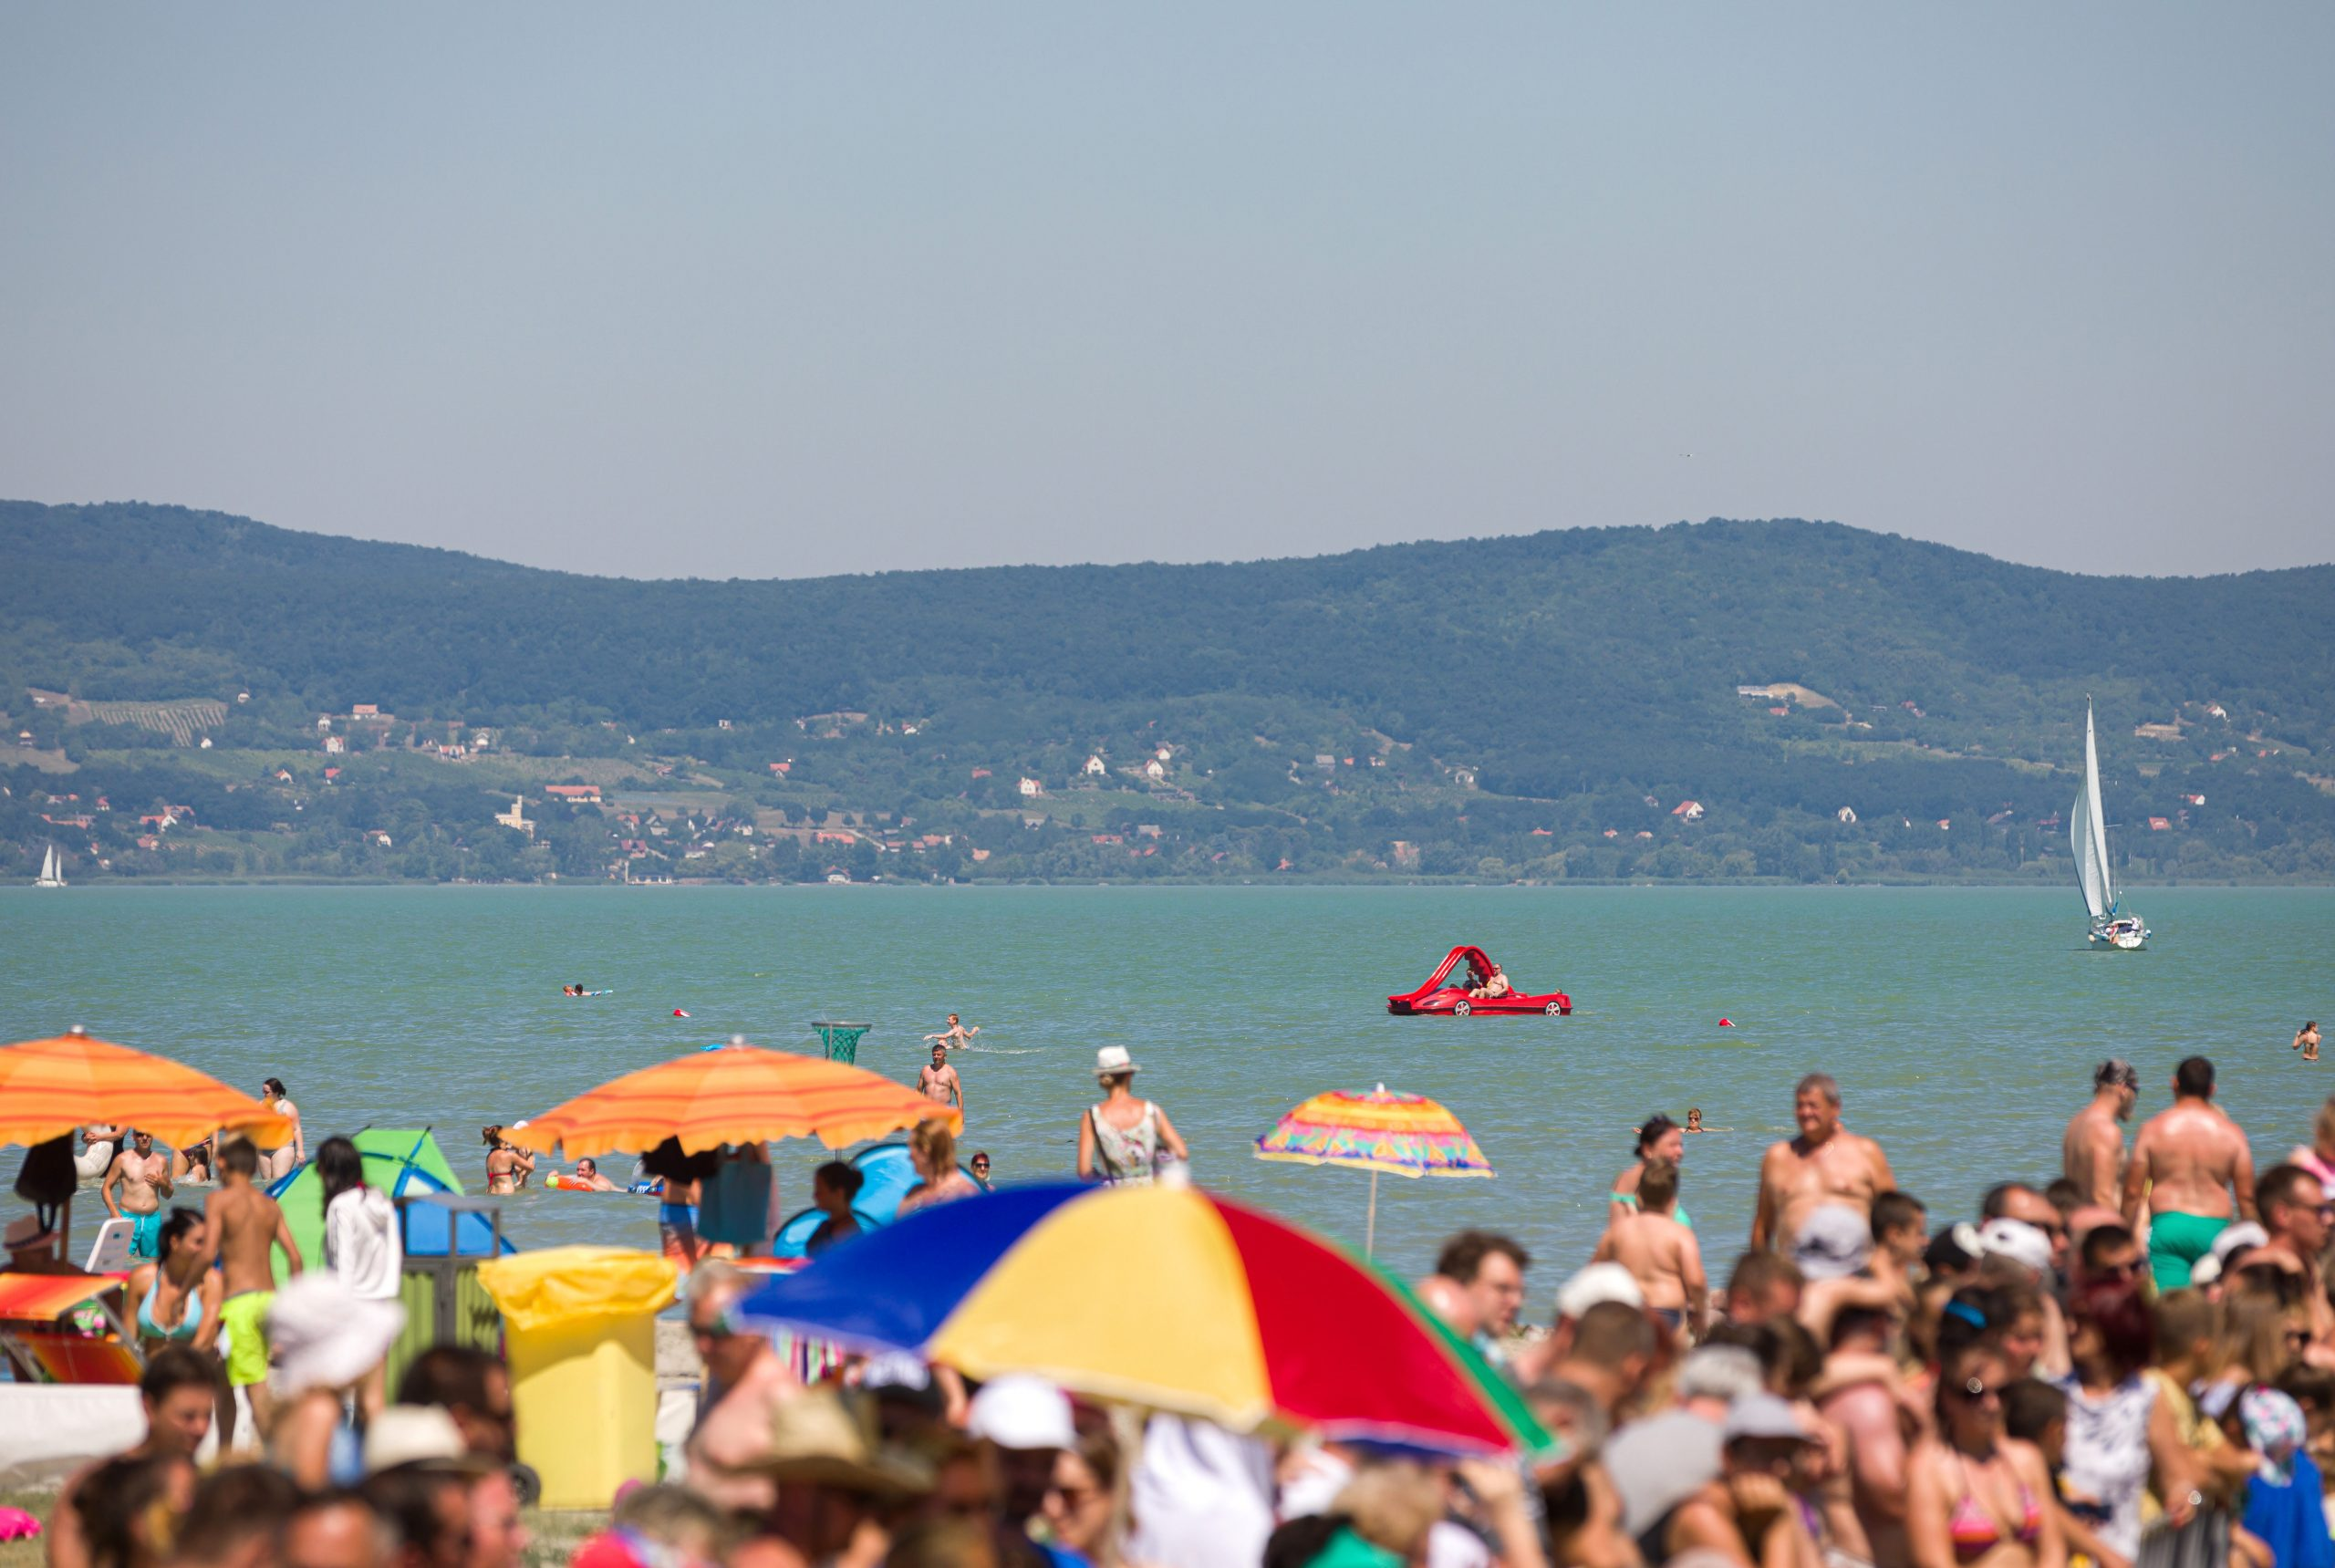 Summers 50 Days Longer than in the Seventies, Hungarian Study Says